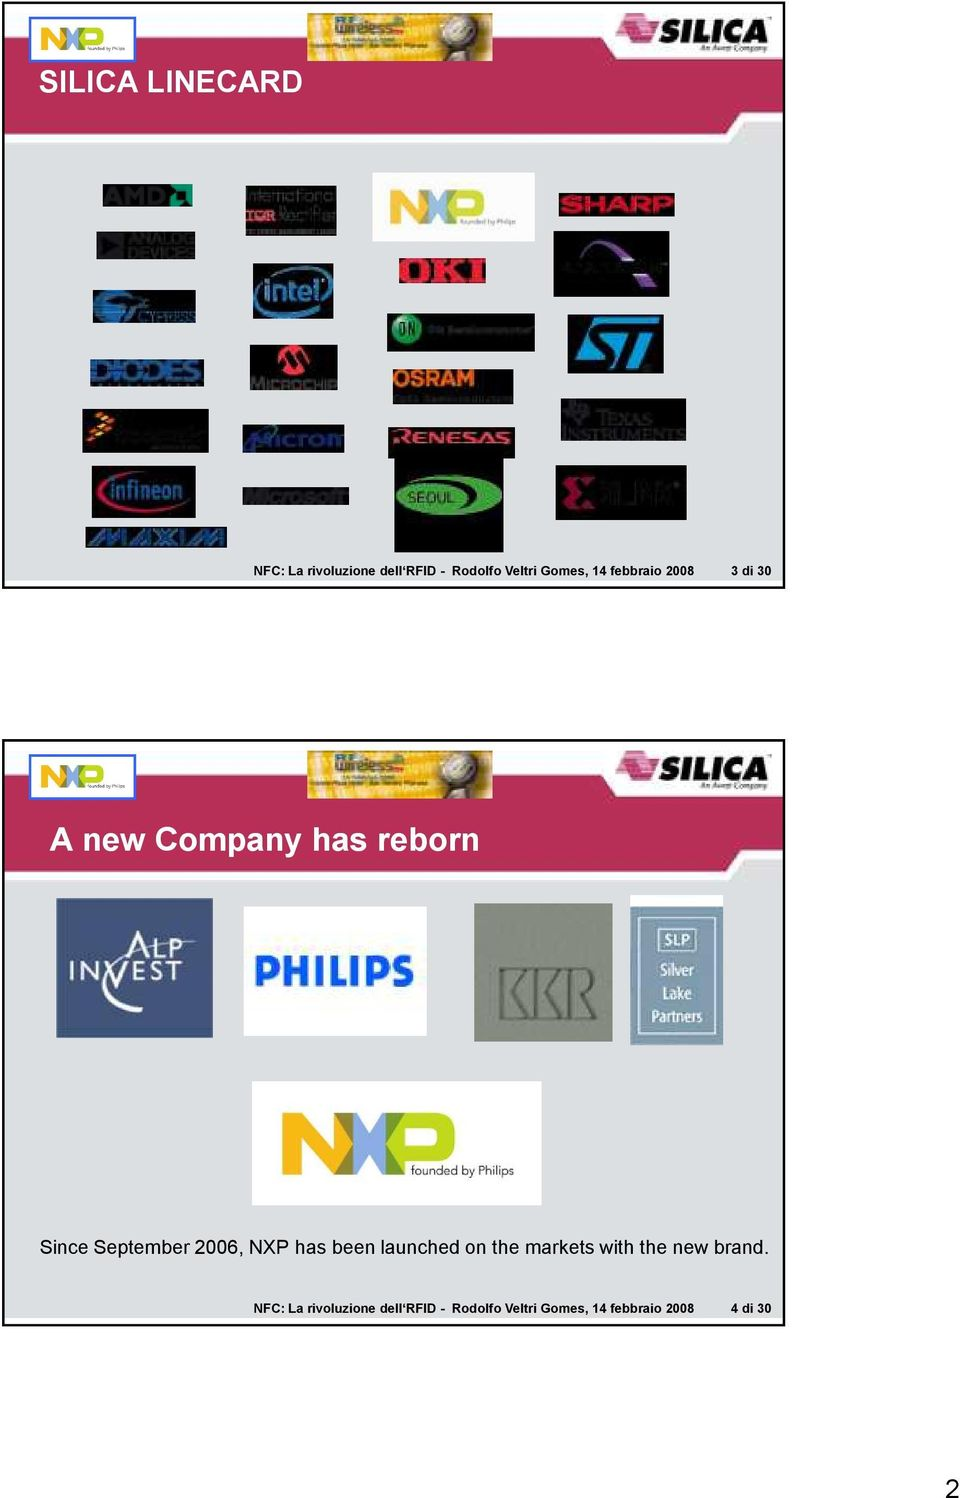 2006, NXP has been launched on the markets with the new brand.